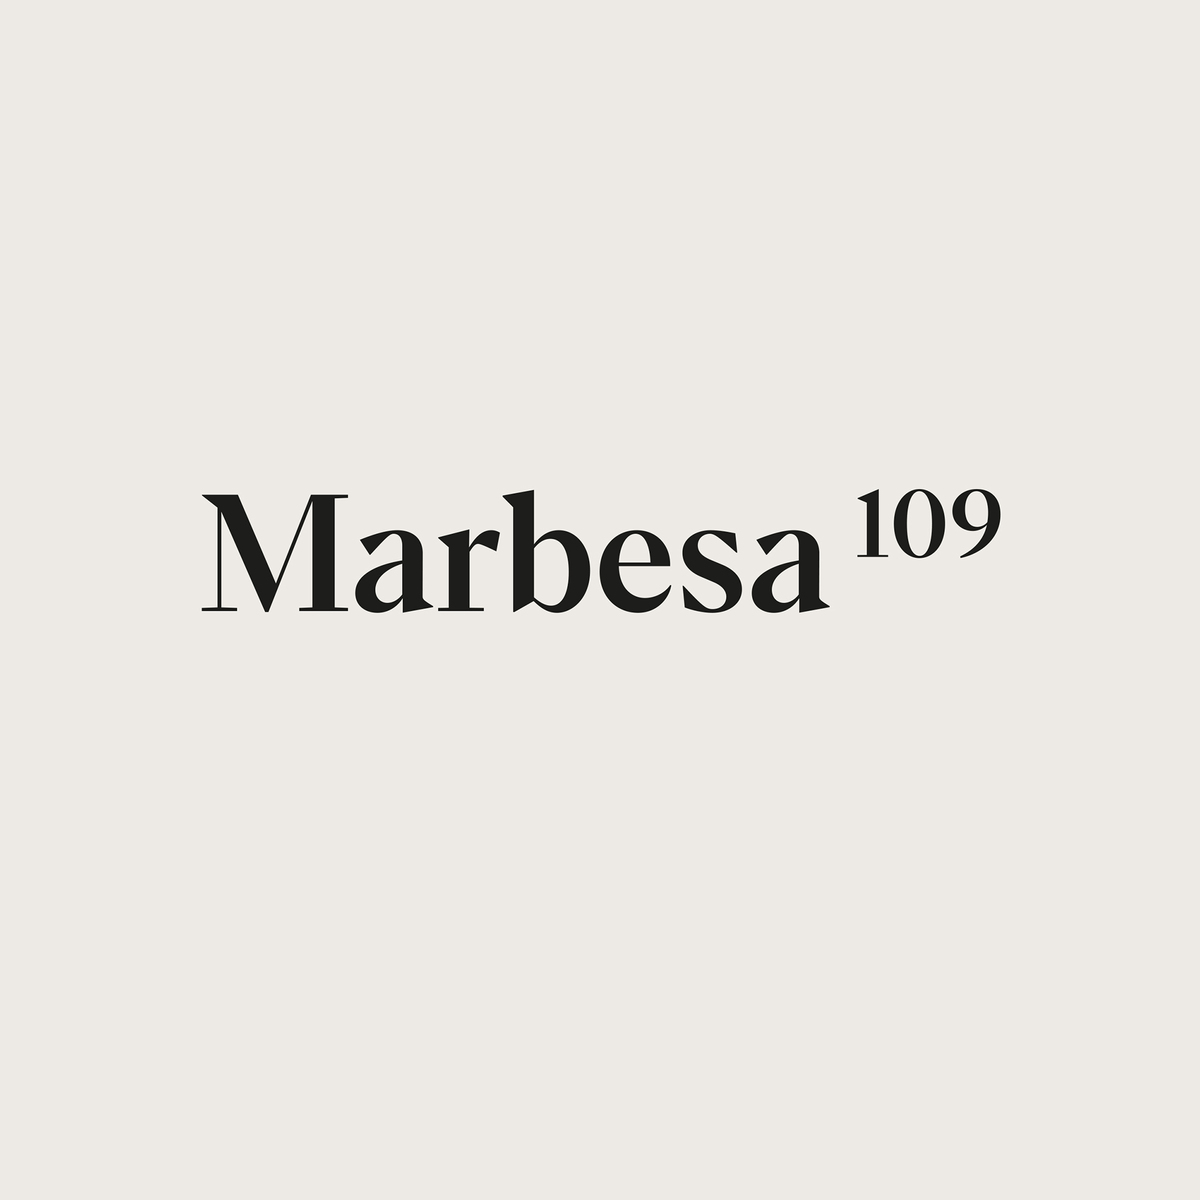 Brand identity for real estate project – Marbesa 109 located in Spain